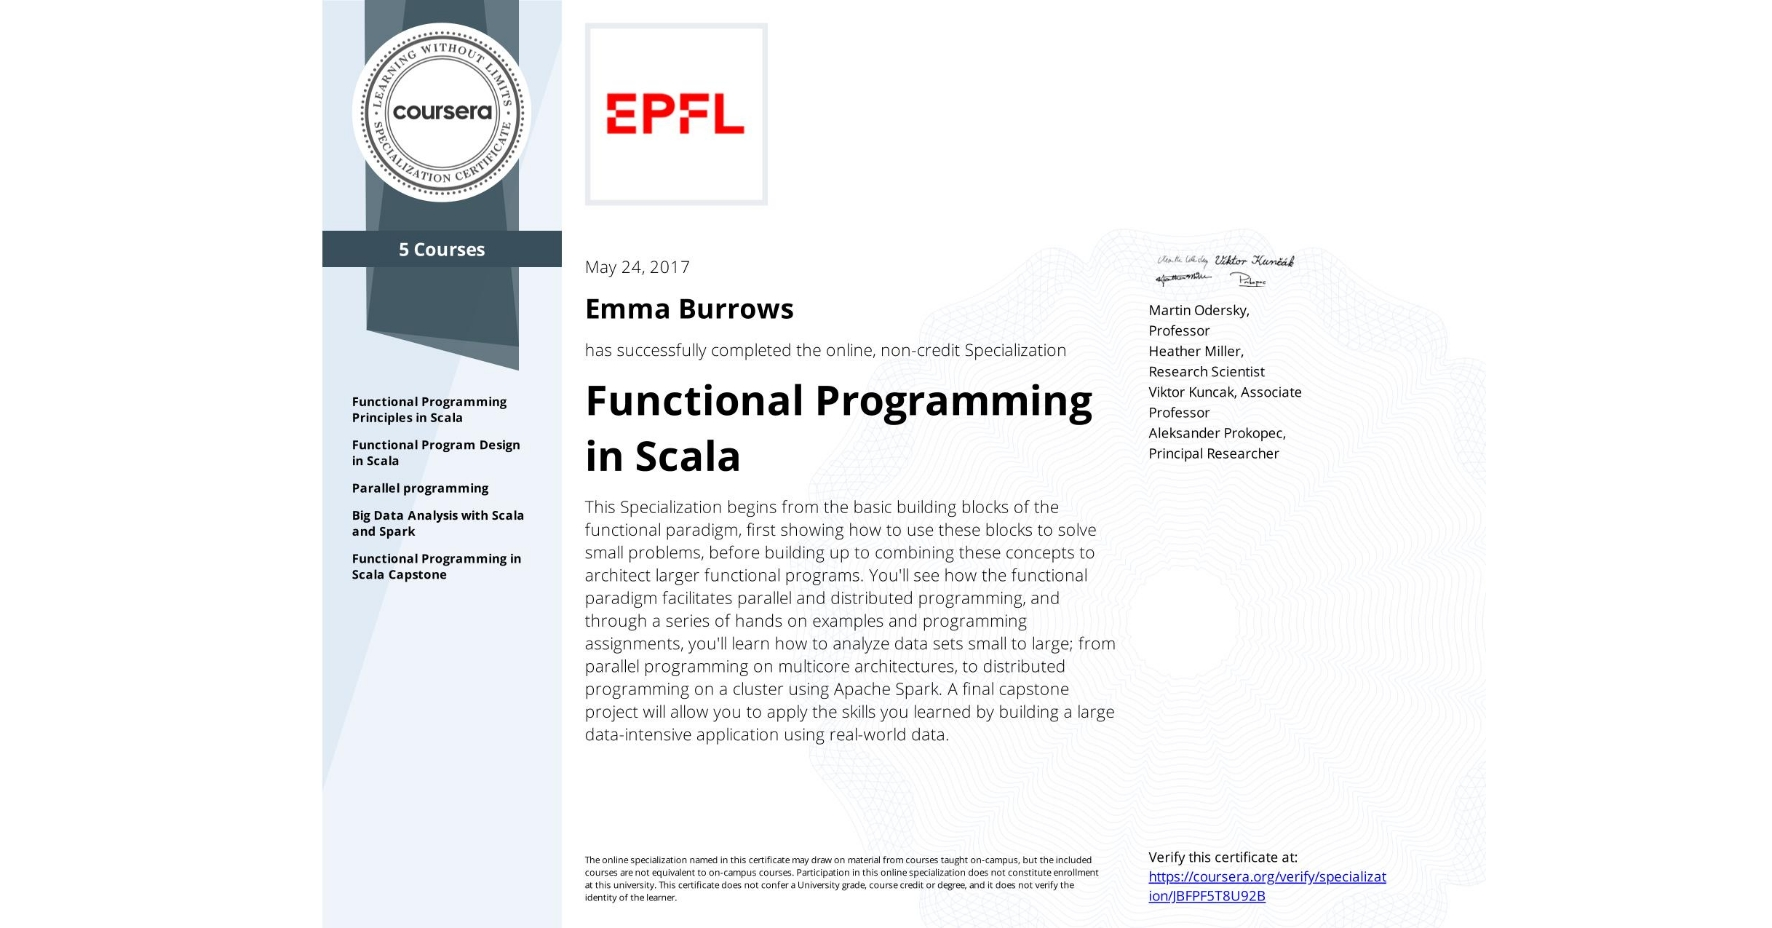 View certificate for Emma Burrows, Functional Programming in Scala, offered through Coursera. This Specialization begins from the basic building blocks of the functional paradigm, first showing how to use these blocks to solve small problems, before building up to combining these concepts to architect larger functional programs. You'll see how the functional paradigm facilitates parallel and distributed programming, and through a series of hands on examples and programming assignments, you'll learn how to analyze data sets small to large; from parallel programming on multicore architectures, to distributed programming on a cluster using Apache Spark. A final capstone project will allow you to apply the skills you learned by building a large data-intensive application using real-world data.